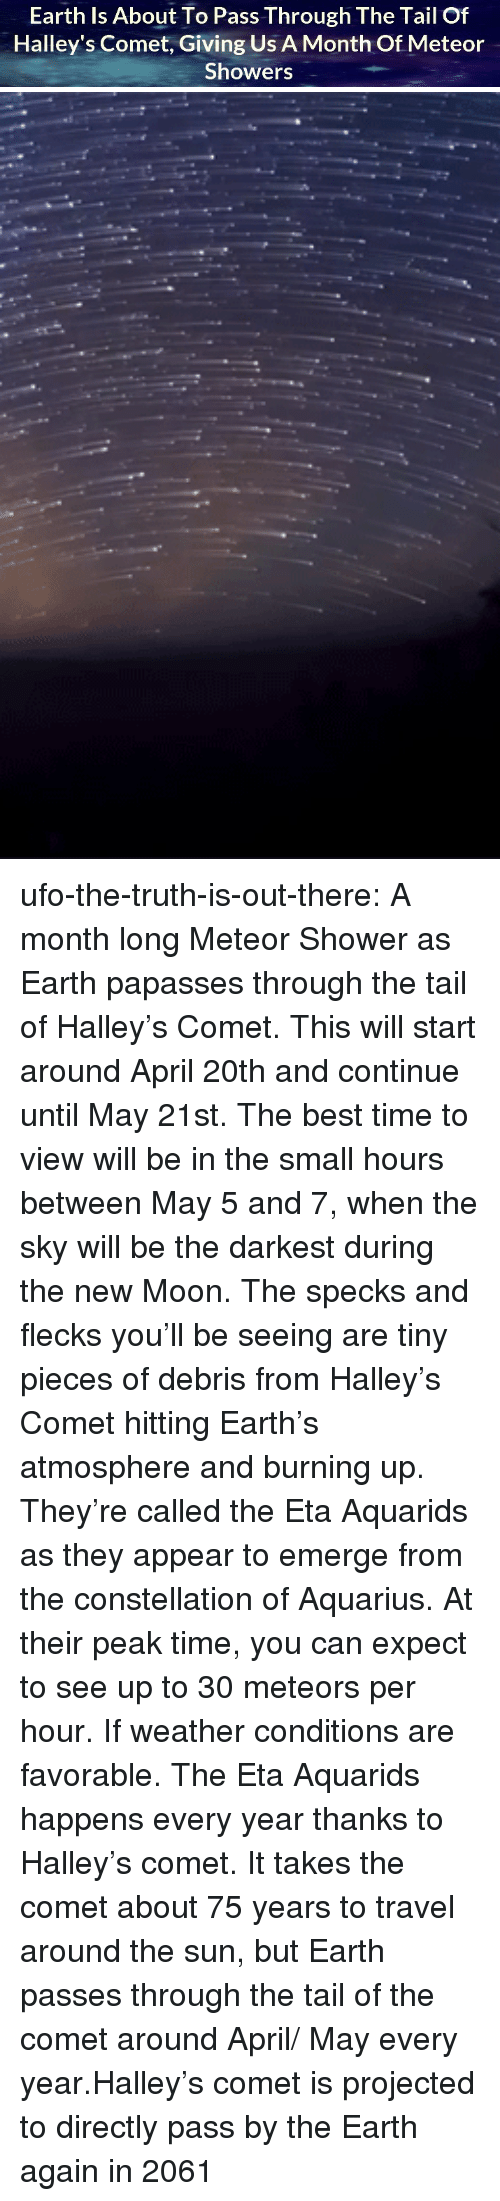 Bodies , Nasa, and Shower: Earth Is About To Pass Through The Tail Of  Halley's Comet, Giving Us A Month Of Meteor  Showers ufo-the-truth-is-out-there: A month long Meteor Shower as Earth papasses through the tail of Halley's Comet. This will start around April 20th and continue until May 21st. The best time to view will be in the small hours between May 5 and 7, when the sky will be the darkest during the new Moon. The specks and flecks you'll be seeing are tiny pieces of debris from Halley's Comet hitting Earth's atmosphere and burning up. They're called the Eta Aquarids as they appear to emerge from the constellation of Aquarius. At their peak time, you can expect to see up to 30 meteors per hour. If weather conditions are favorable. The Eta Aquarids happens every year thanks to Halley's comet. It takes the comet about 75 years to travel around the sun, but Earth passes through the tail of the comet around April/ May every year.Halley's comet is projected to directly pass by the Earth again in 2061